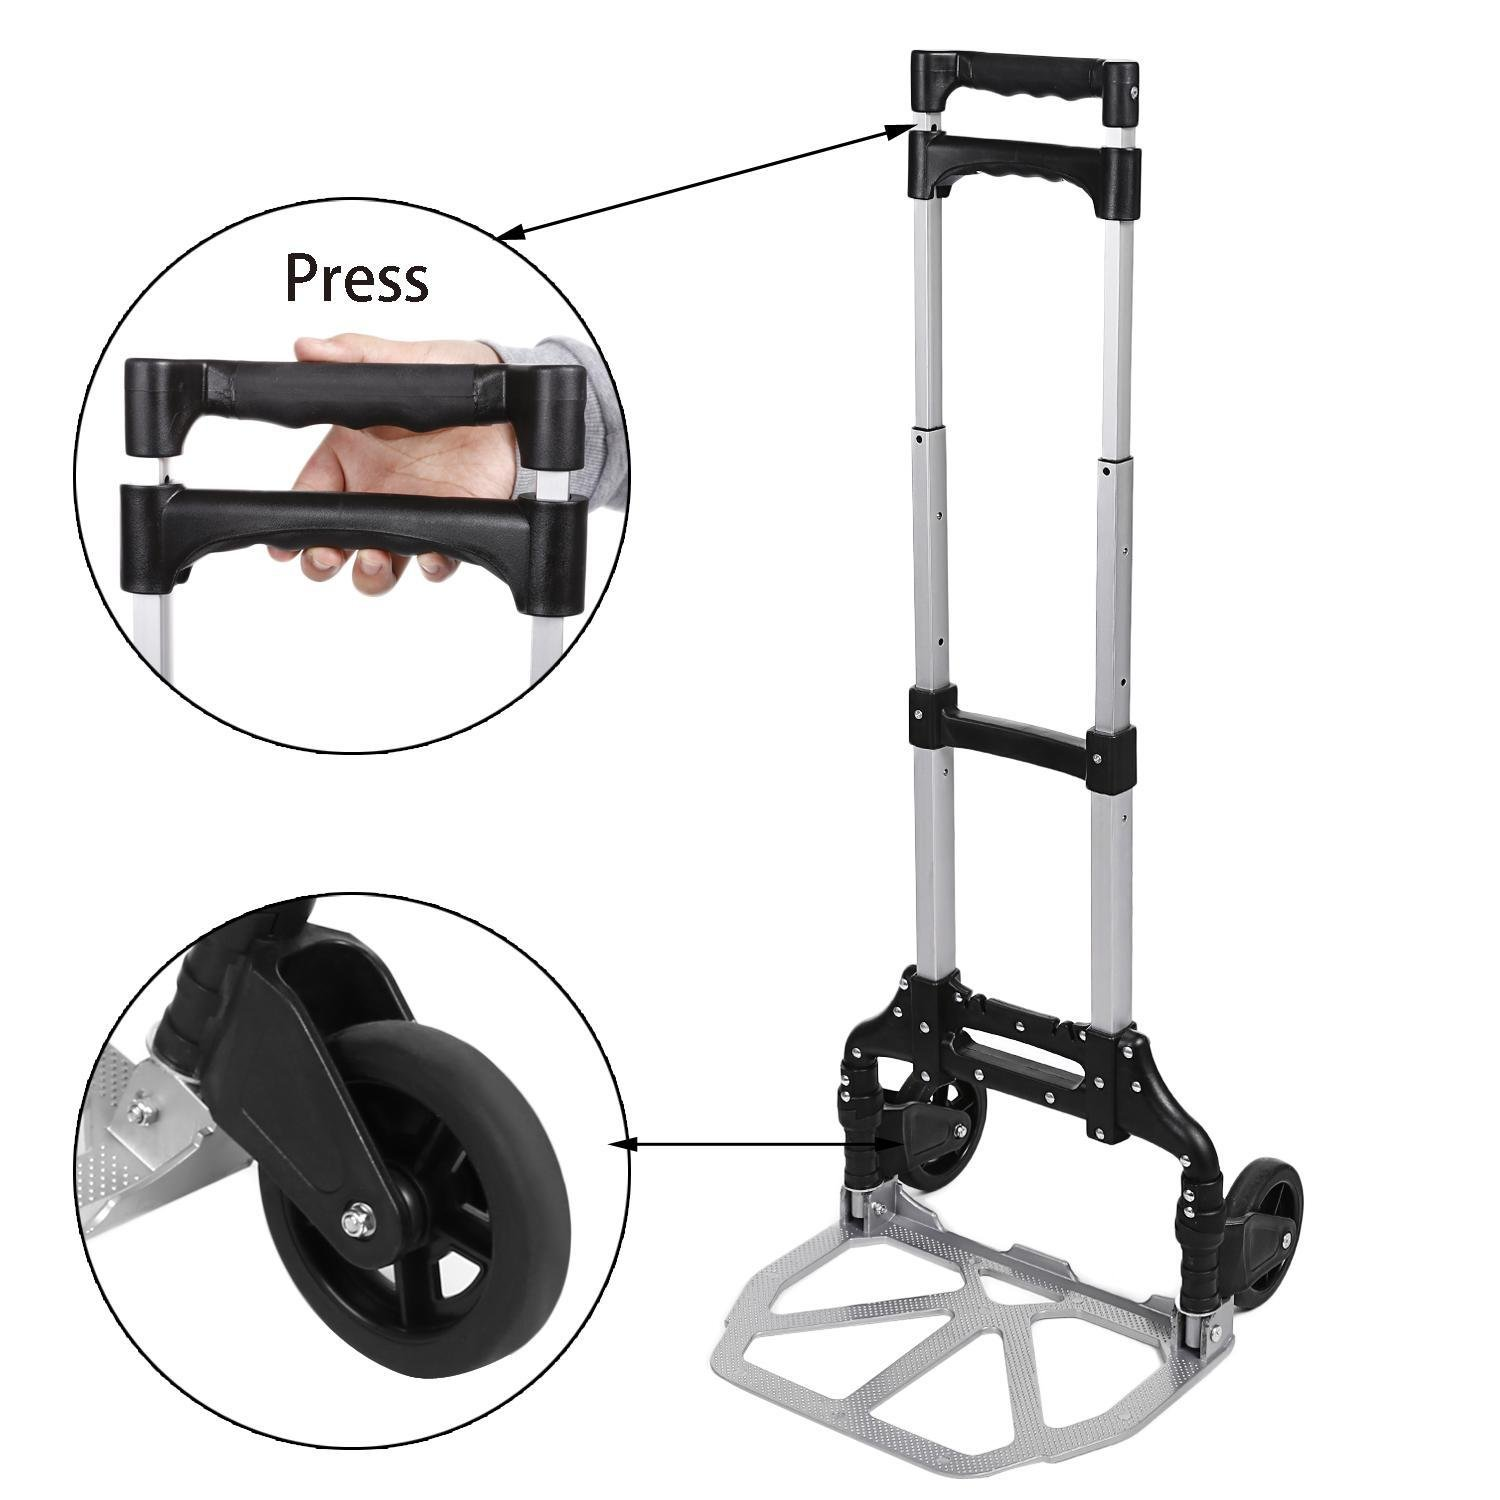 (US Stock) Keland Foldable Lightweight Hand Truck, Portable Aluminum Small Hand Trucks,150lbs Capacity Mini Hand Truck with Arm Handle for Industrial/Travel/Shopping by Keland (Image #3)